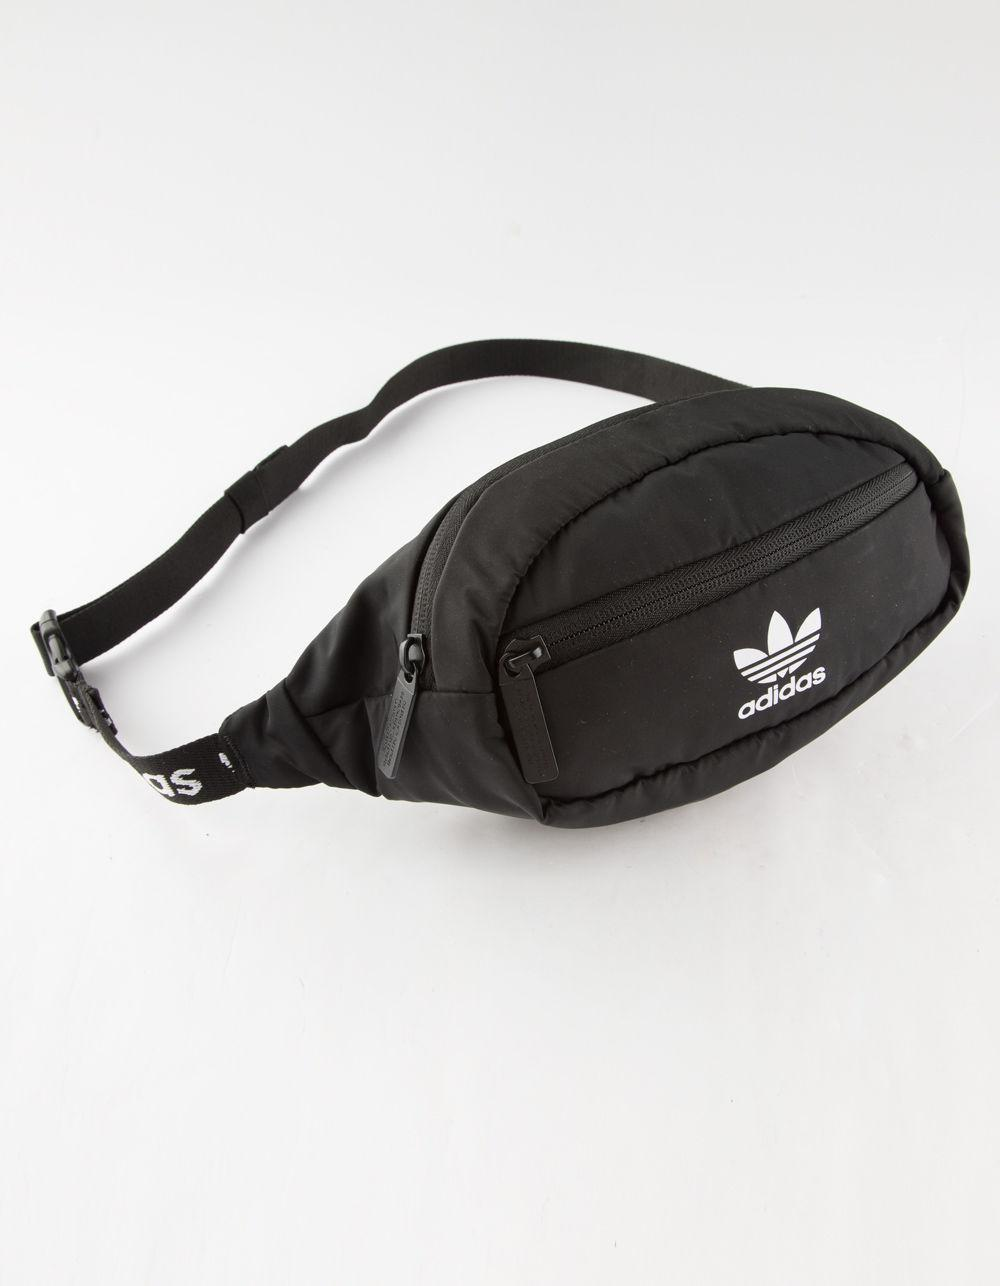 Adidas - Originals Black   White Fanny Pack for Men - Lyst. View fullscreen 98a317c20c429